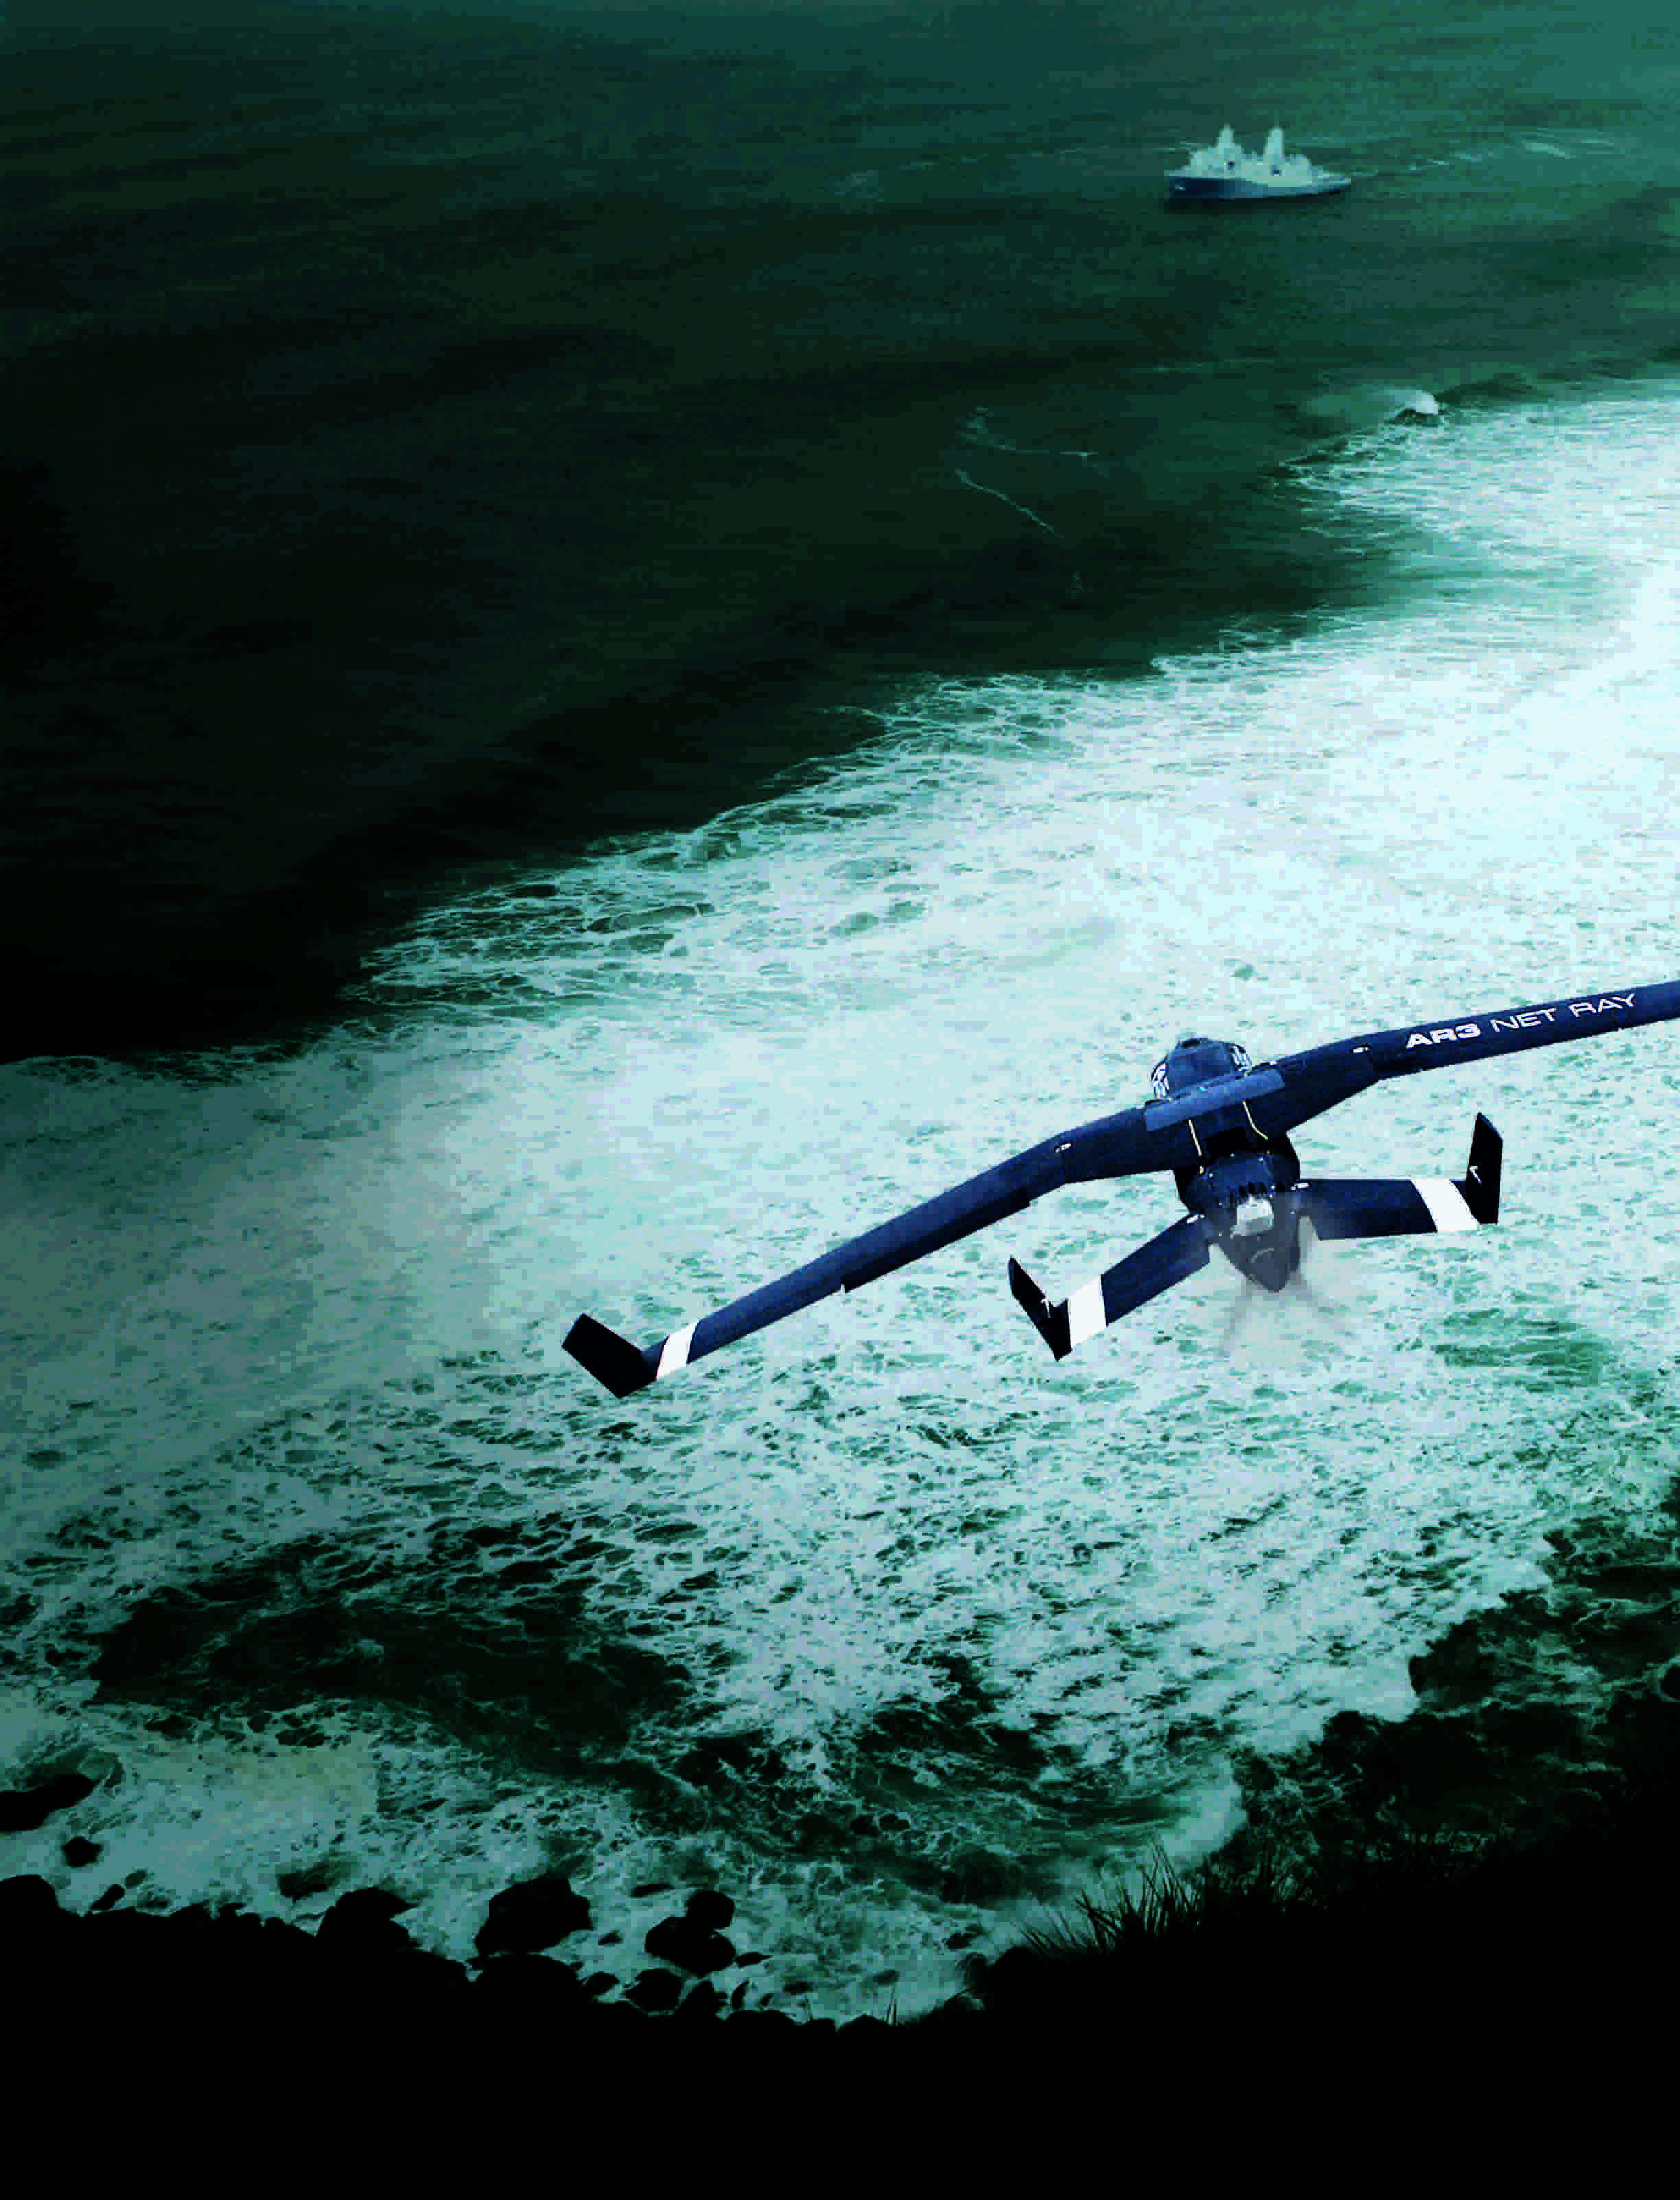 Drones and maritime surveillance